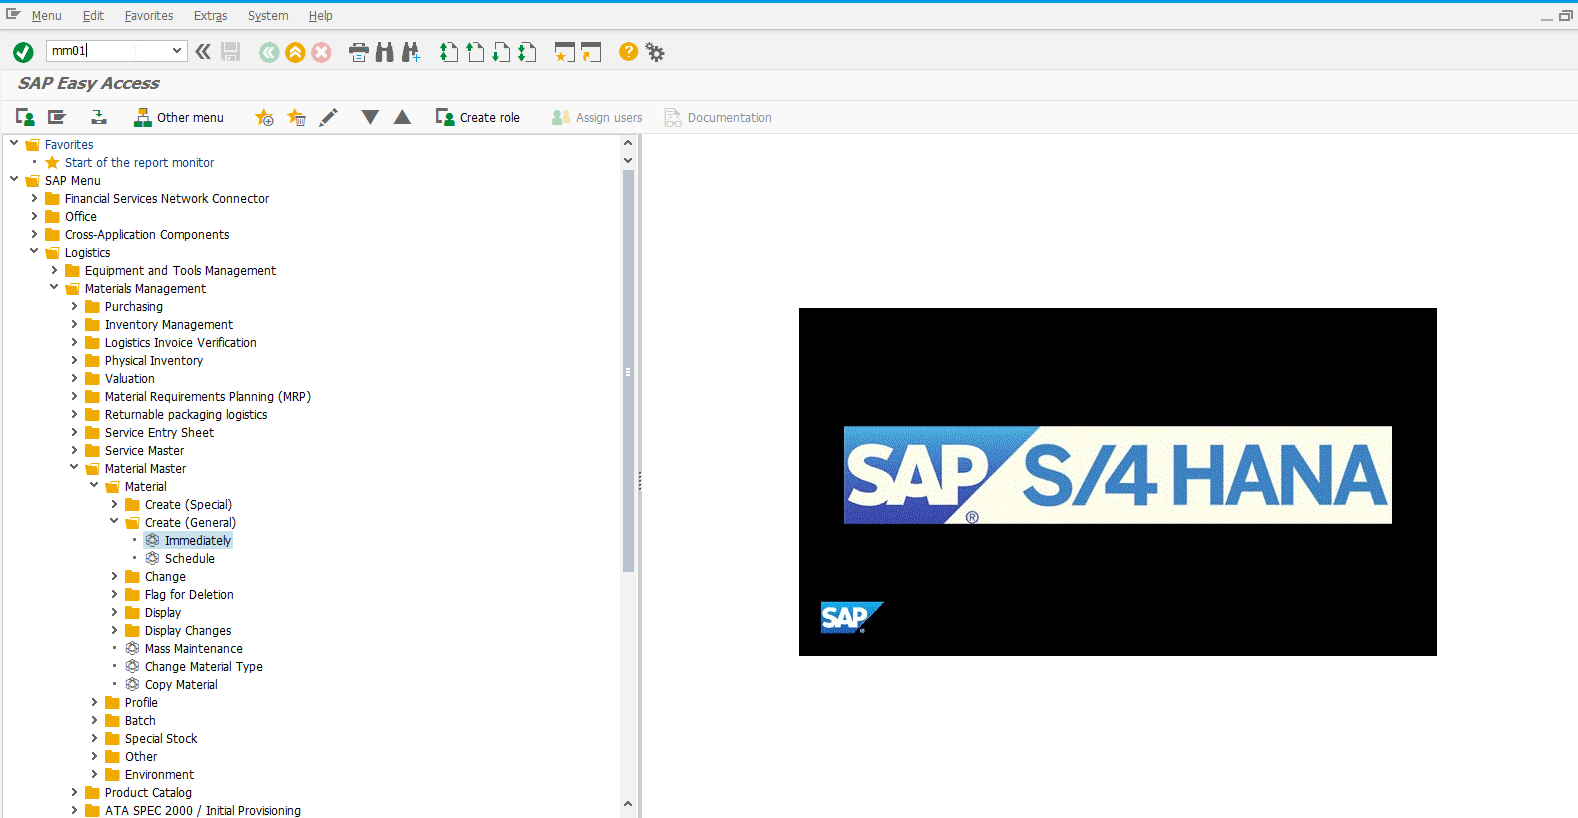 How to create a material in SAP S/4HANA - SAP MM in SAP S/4HANA